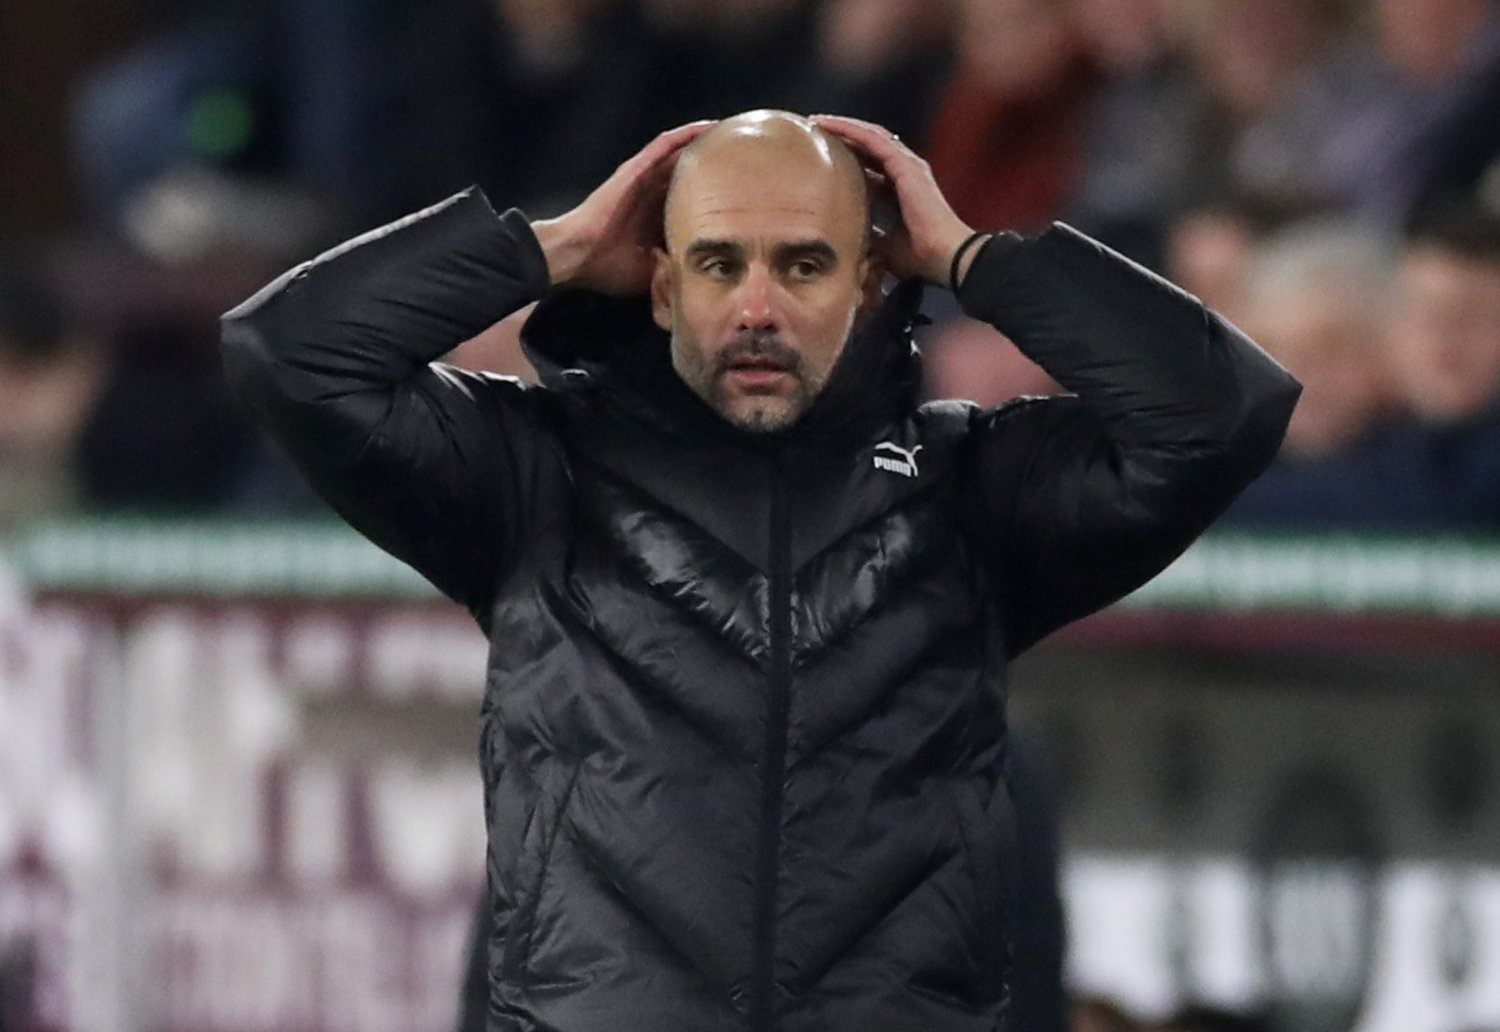 Soccer Football - Premier League - Burnley v Manchester City - Turf Moor, Burnley, Britain - December 3, 2019 Manchester City manager Pep Guardiola reacts Action Images via Reuters/Carl Recine EDITORIAL USE ONLY. No use with unauthorized audio, video, data, fixture lists, club/league logos or